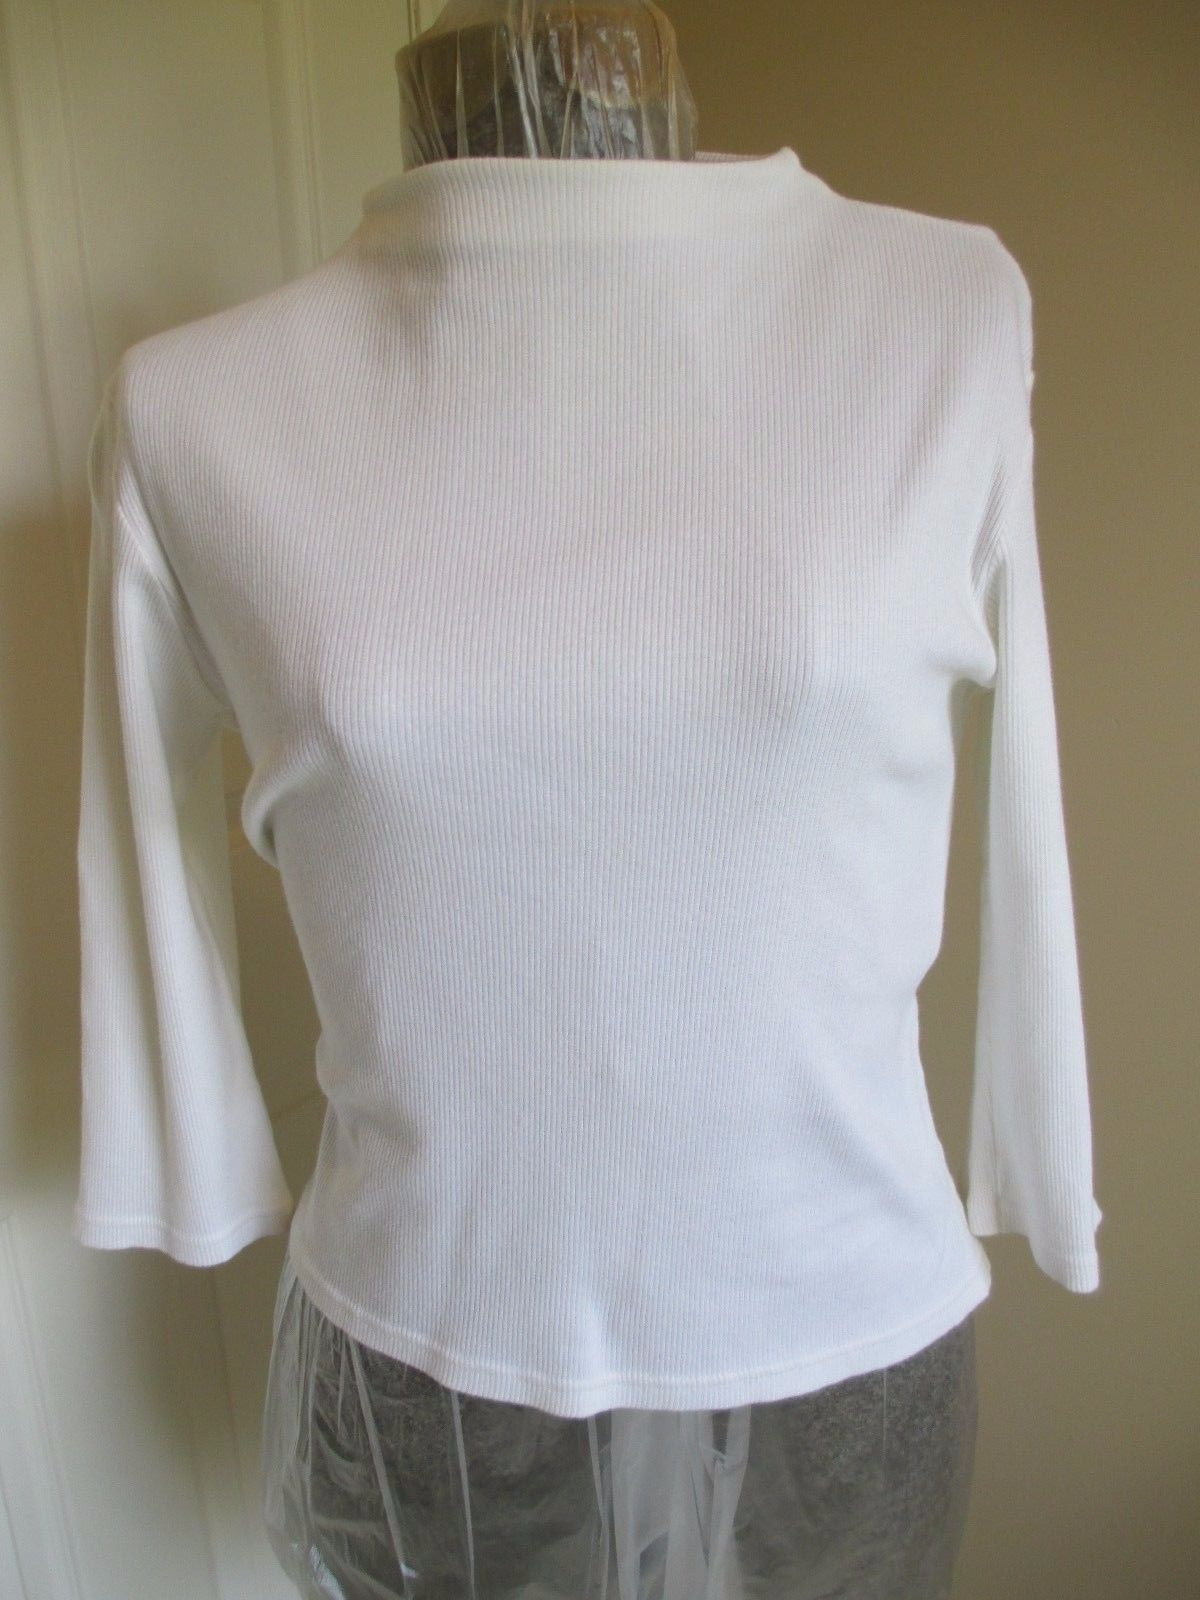 Crossroads White Knit Top Large Form Fitting ¾ Length Sleeves. - $10.39